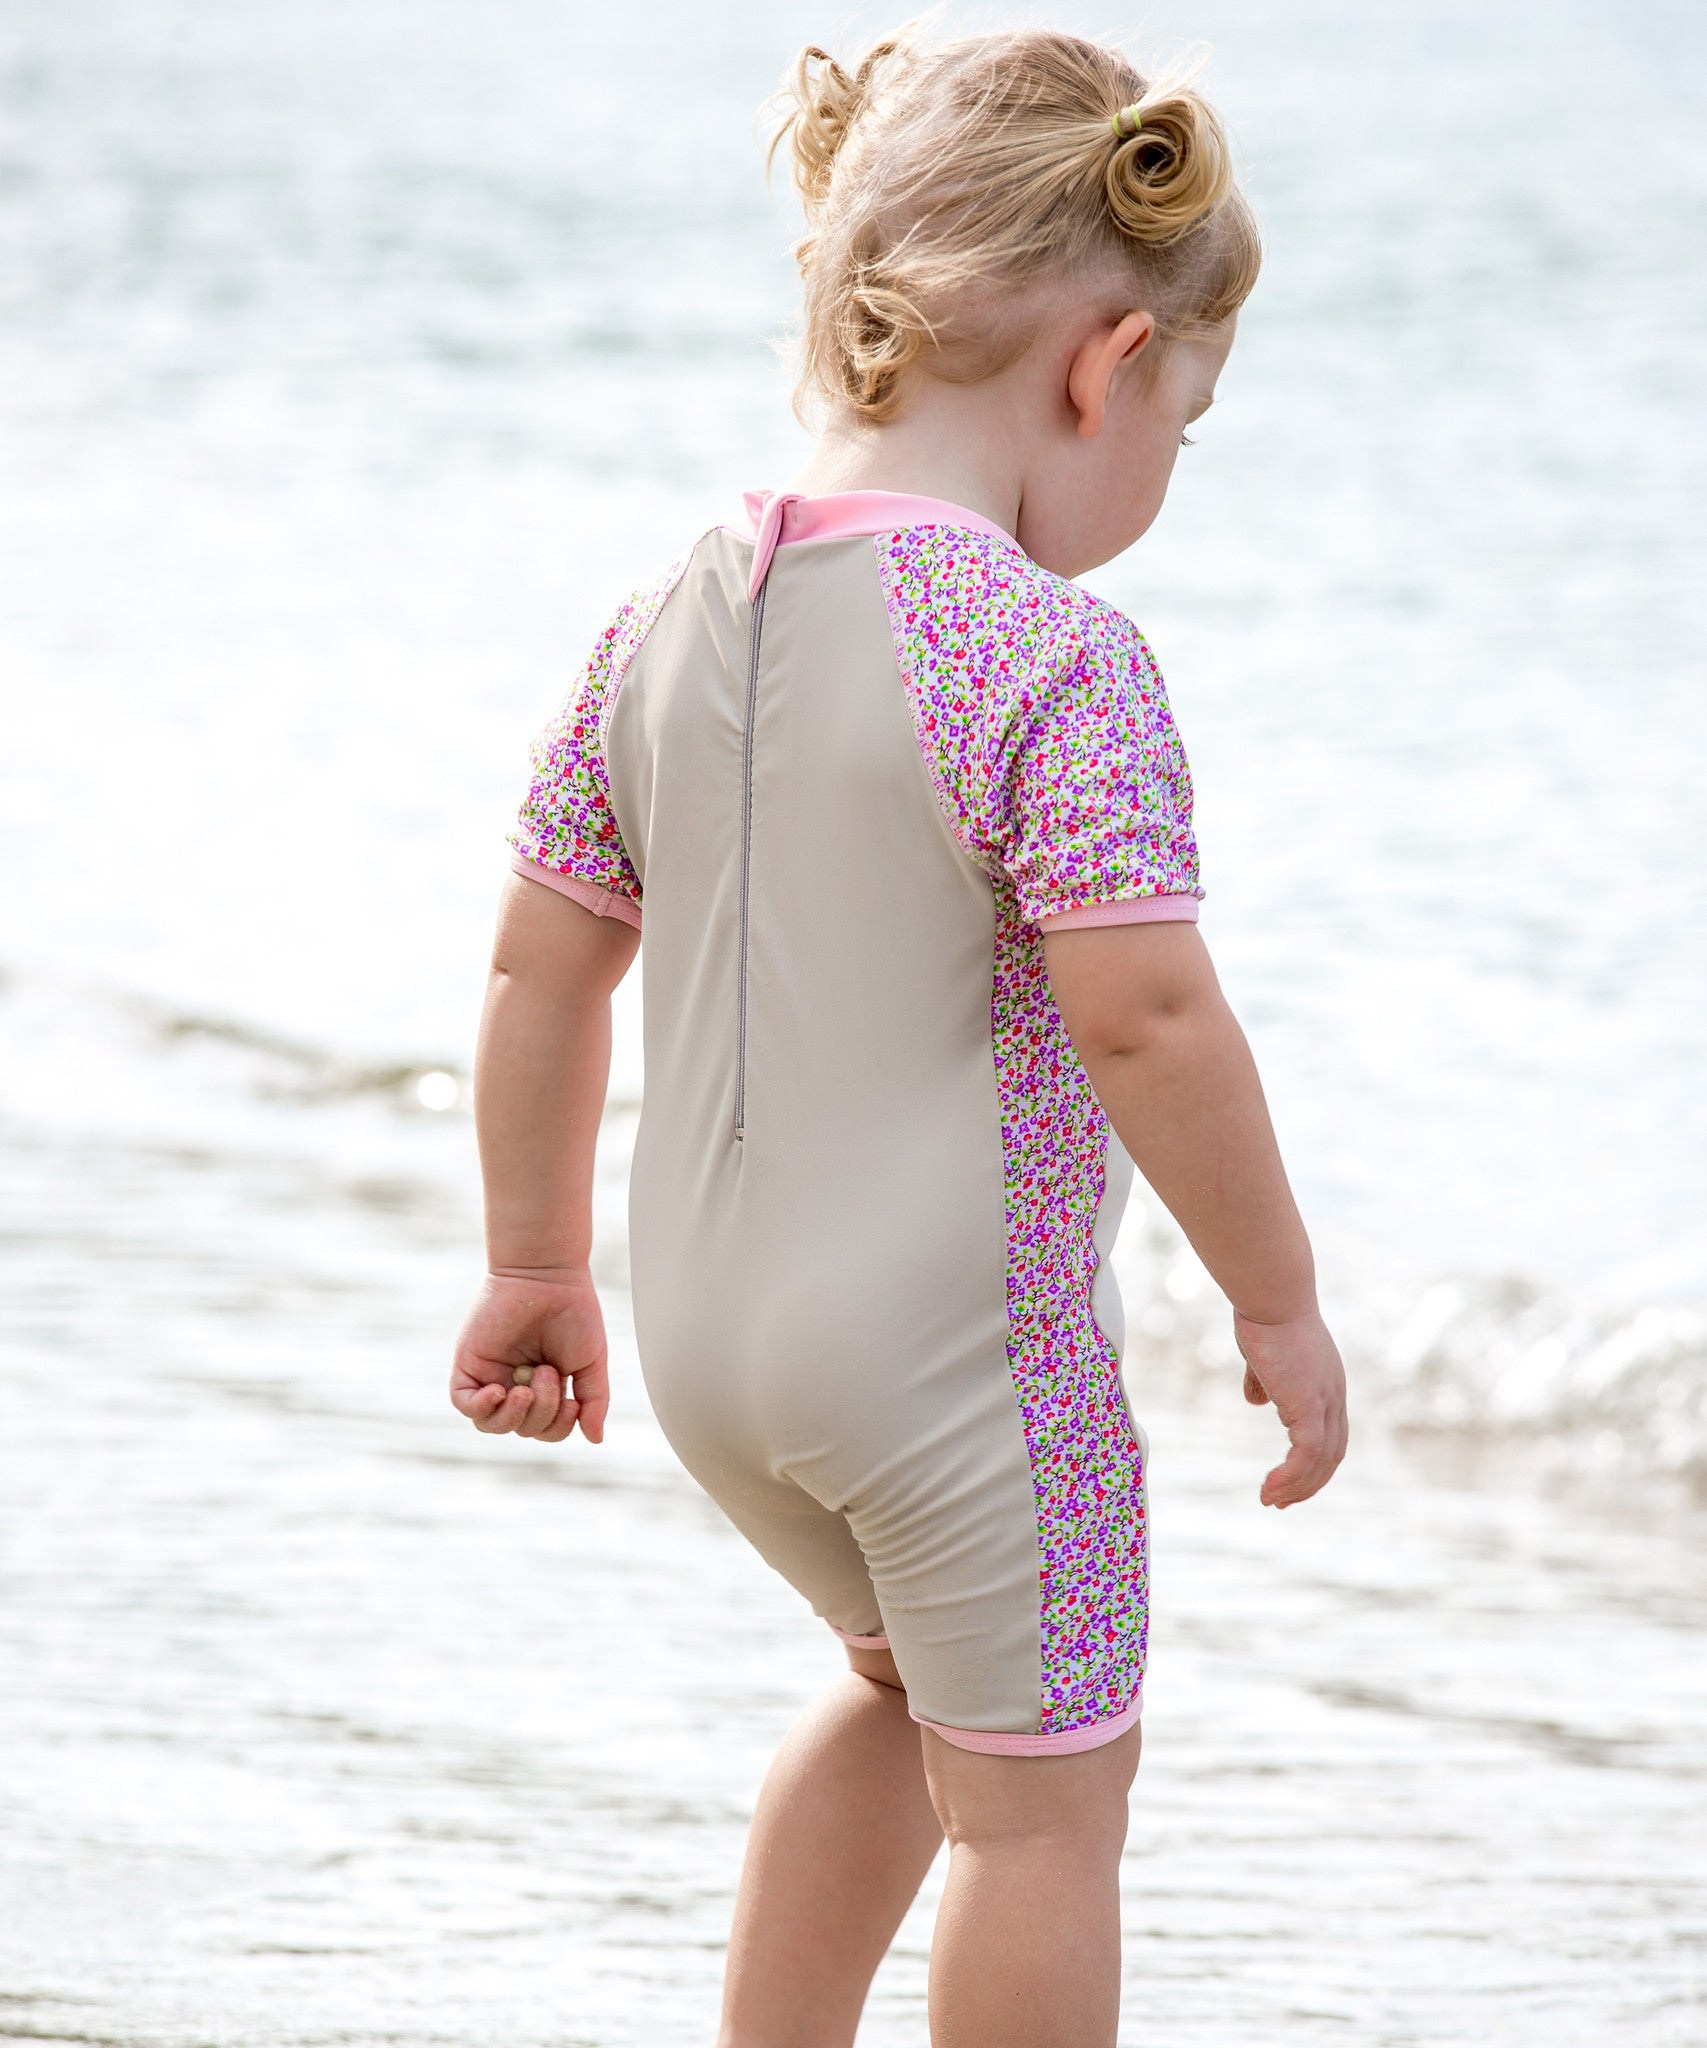 Kids Swimwear Girls Swimsuits Anti-UV Sun Safe Swimming Beach Costume Child All-in-One Sun Protection Sunsuit With Swimming Cap by Vine £ + £ delivery.